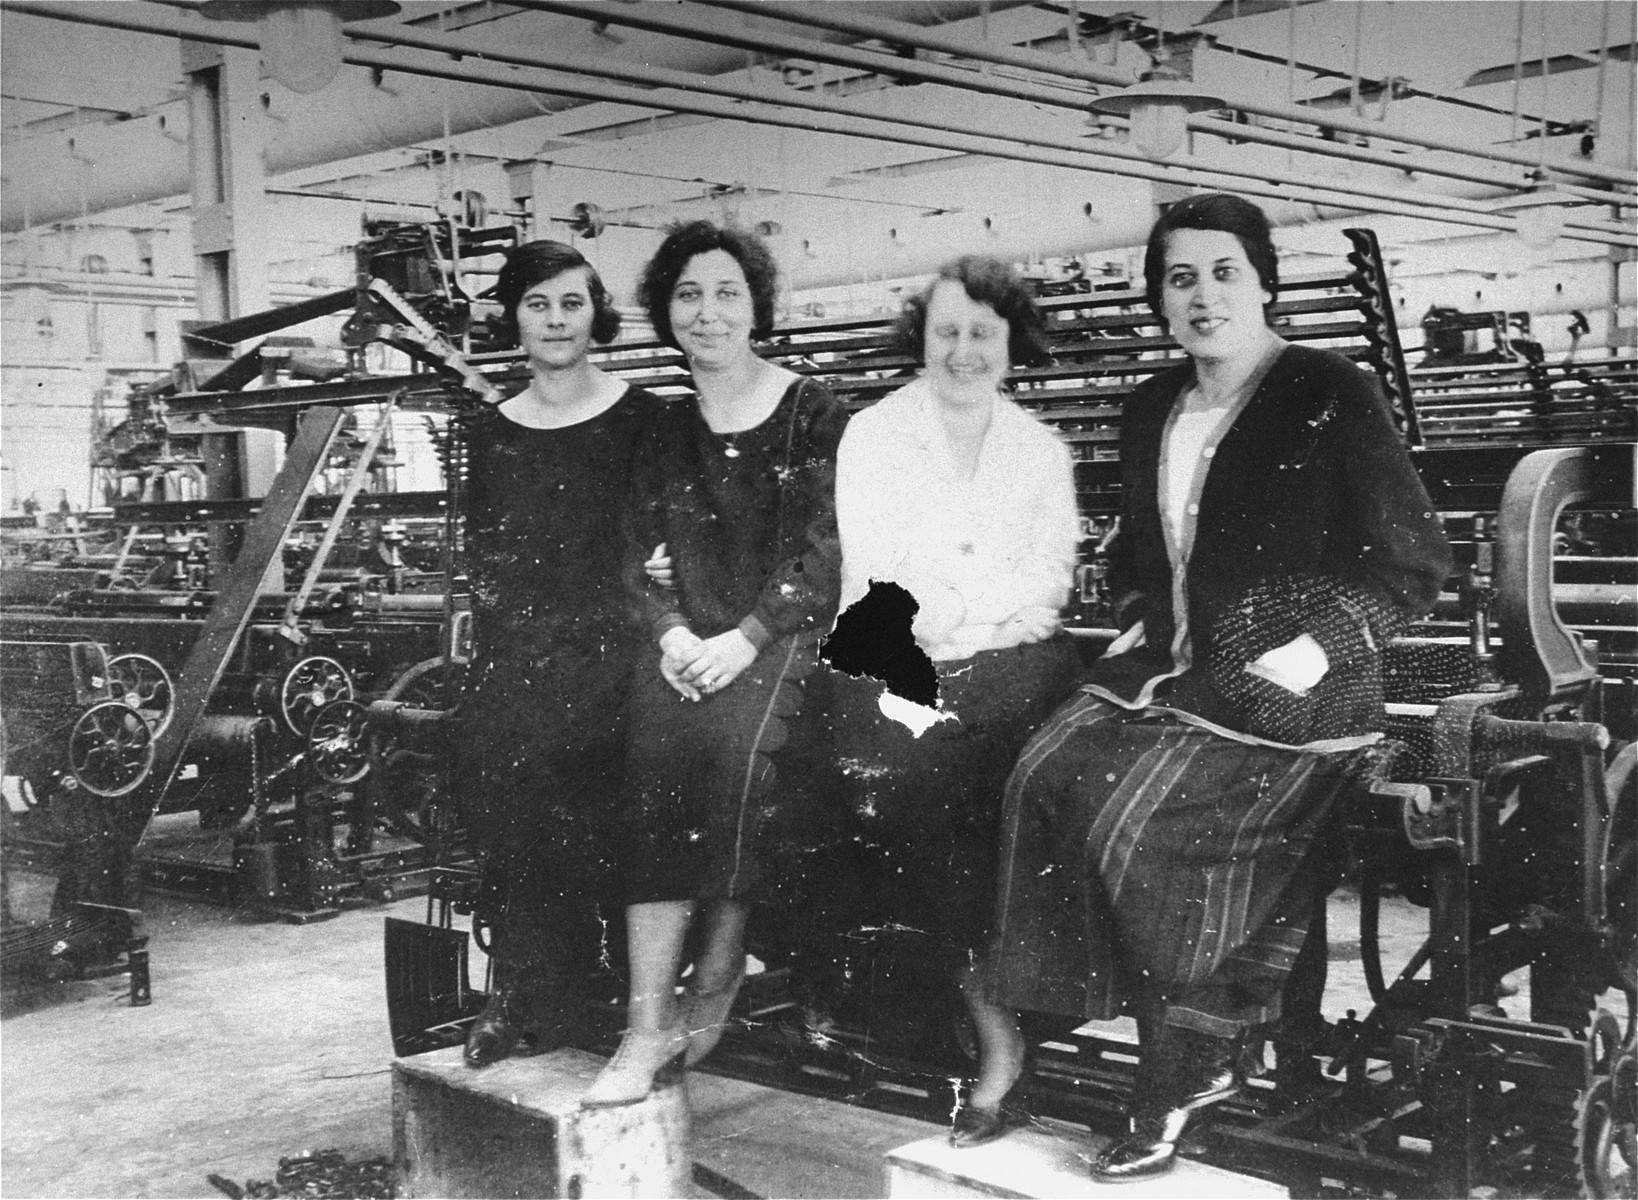 Four young Jewish female workers pose in the Goldberger textile factory in Budapest.    Among those pictured is Margit Kornhauser (wearing the white blouse).